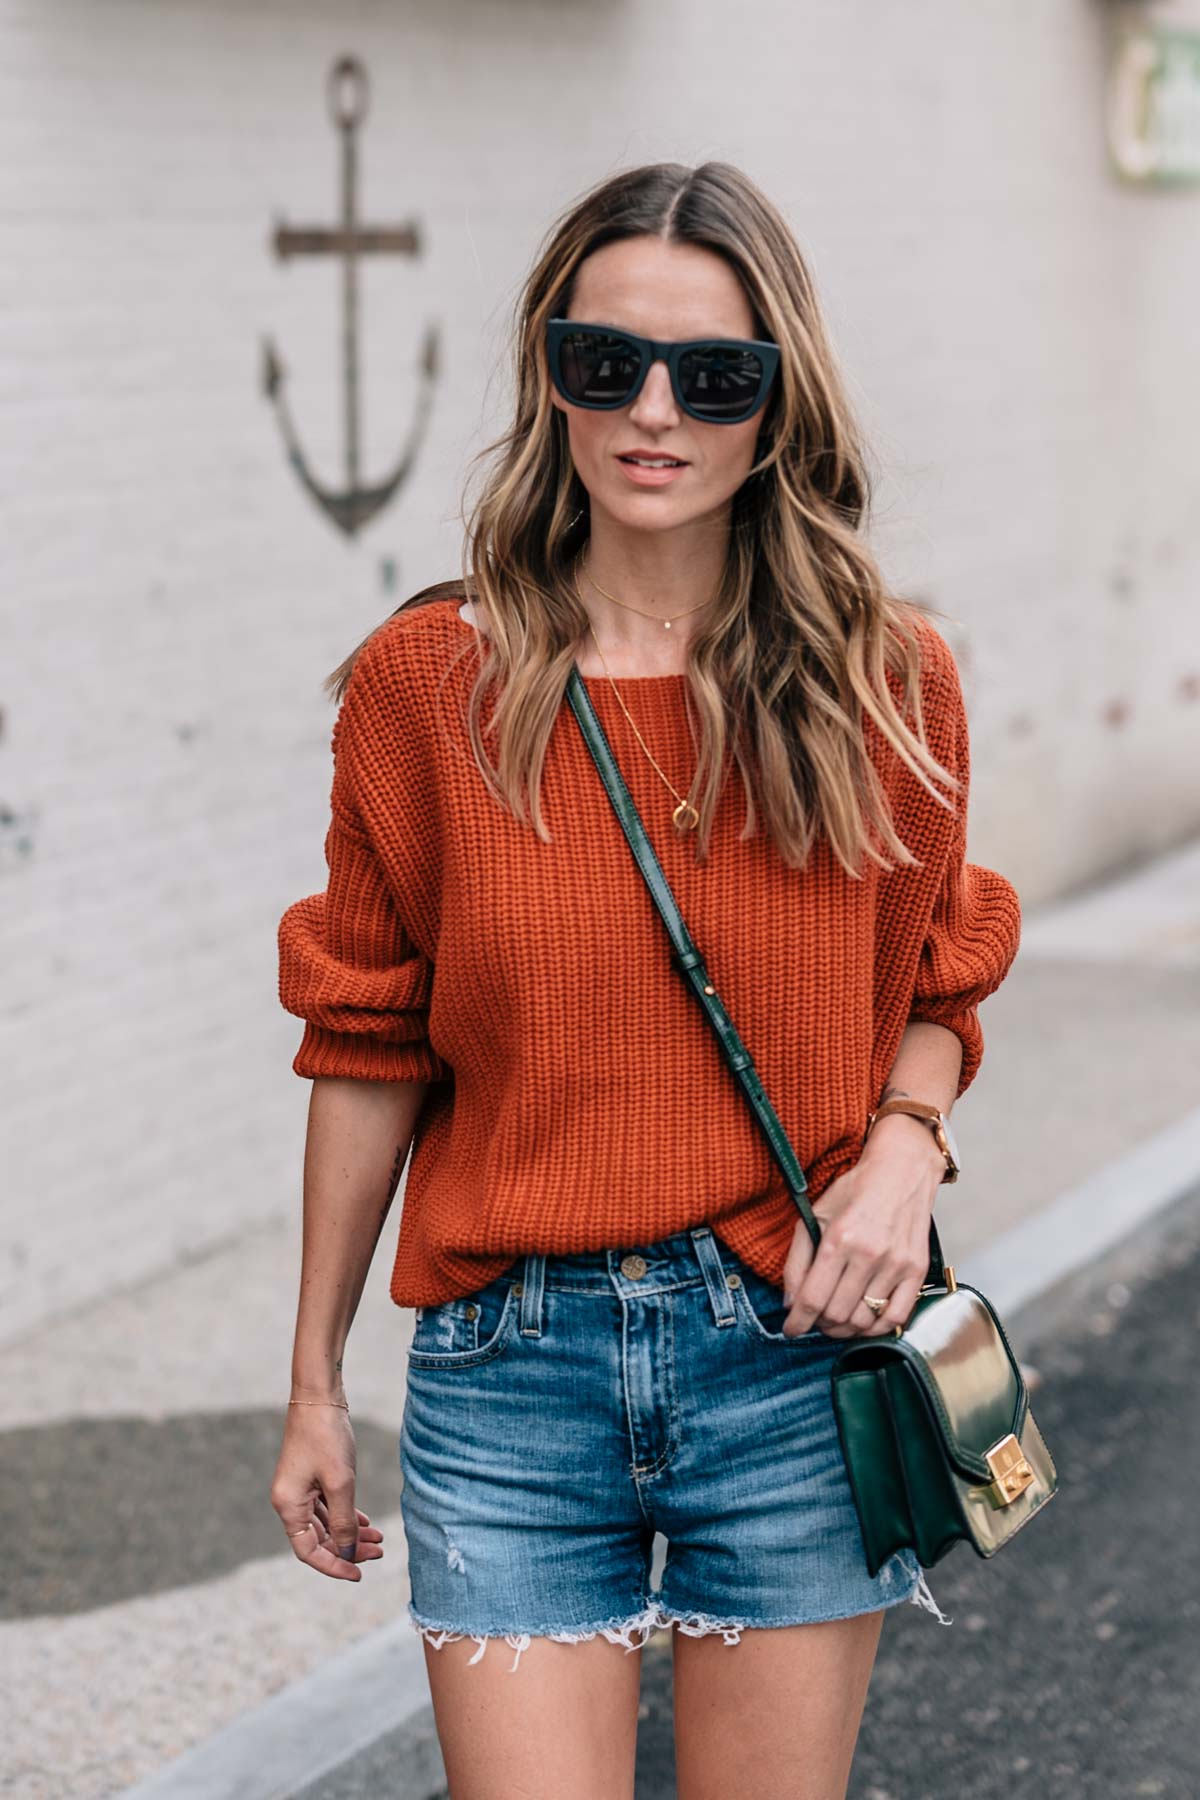 Jess Ann Kirby styles pantone autumn maple in the French Connection Millie mozart sweater and AG jean shorts